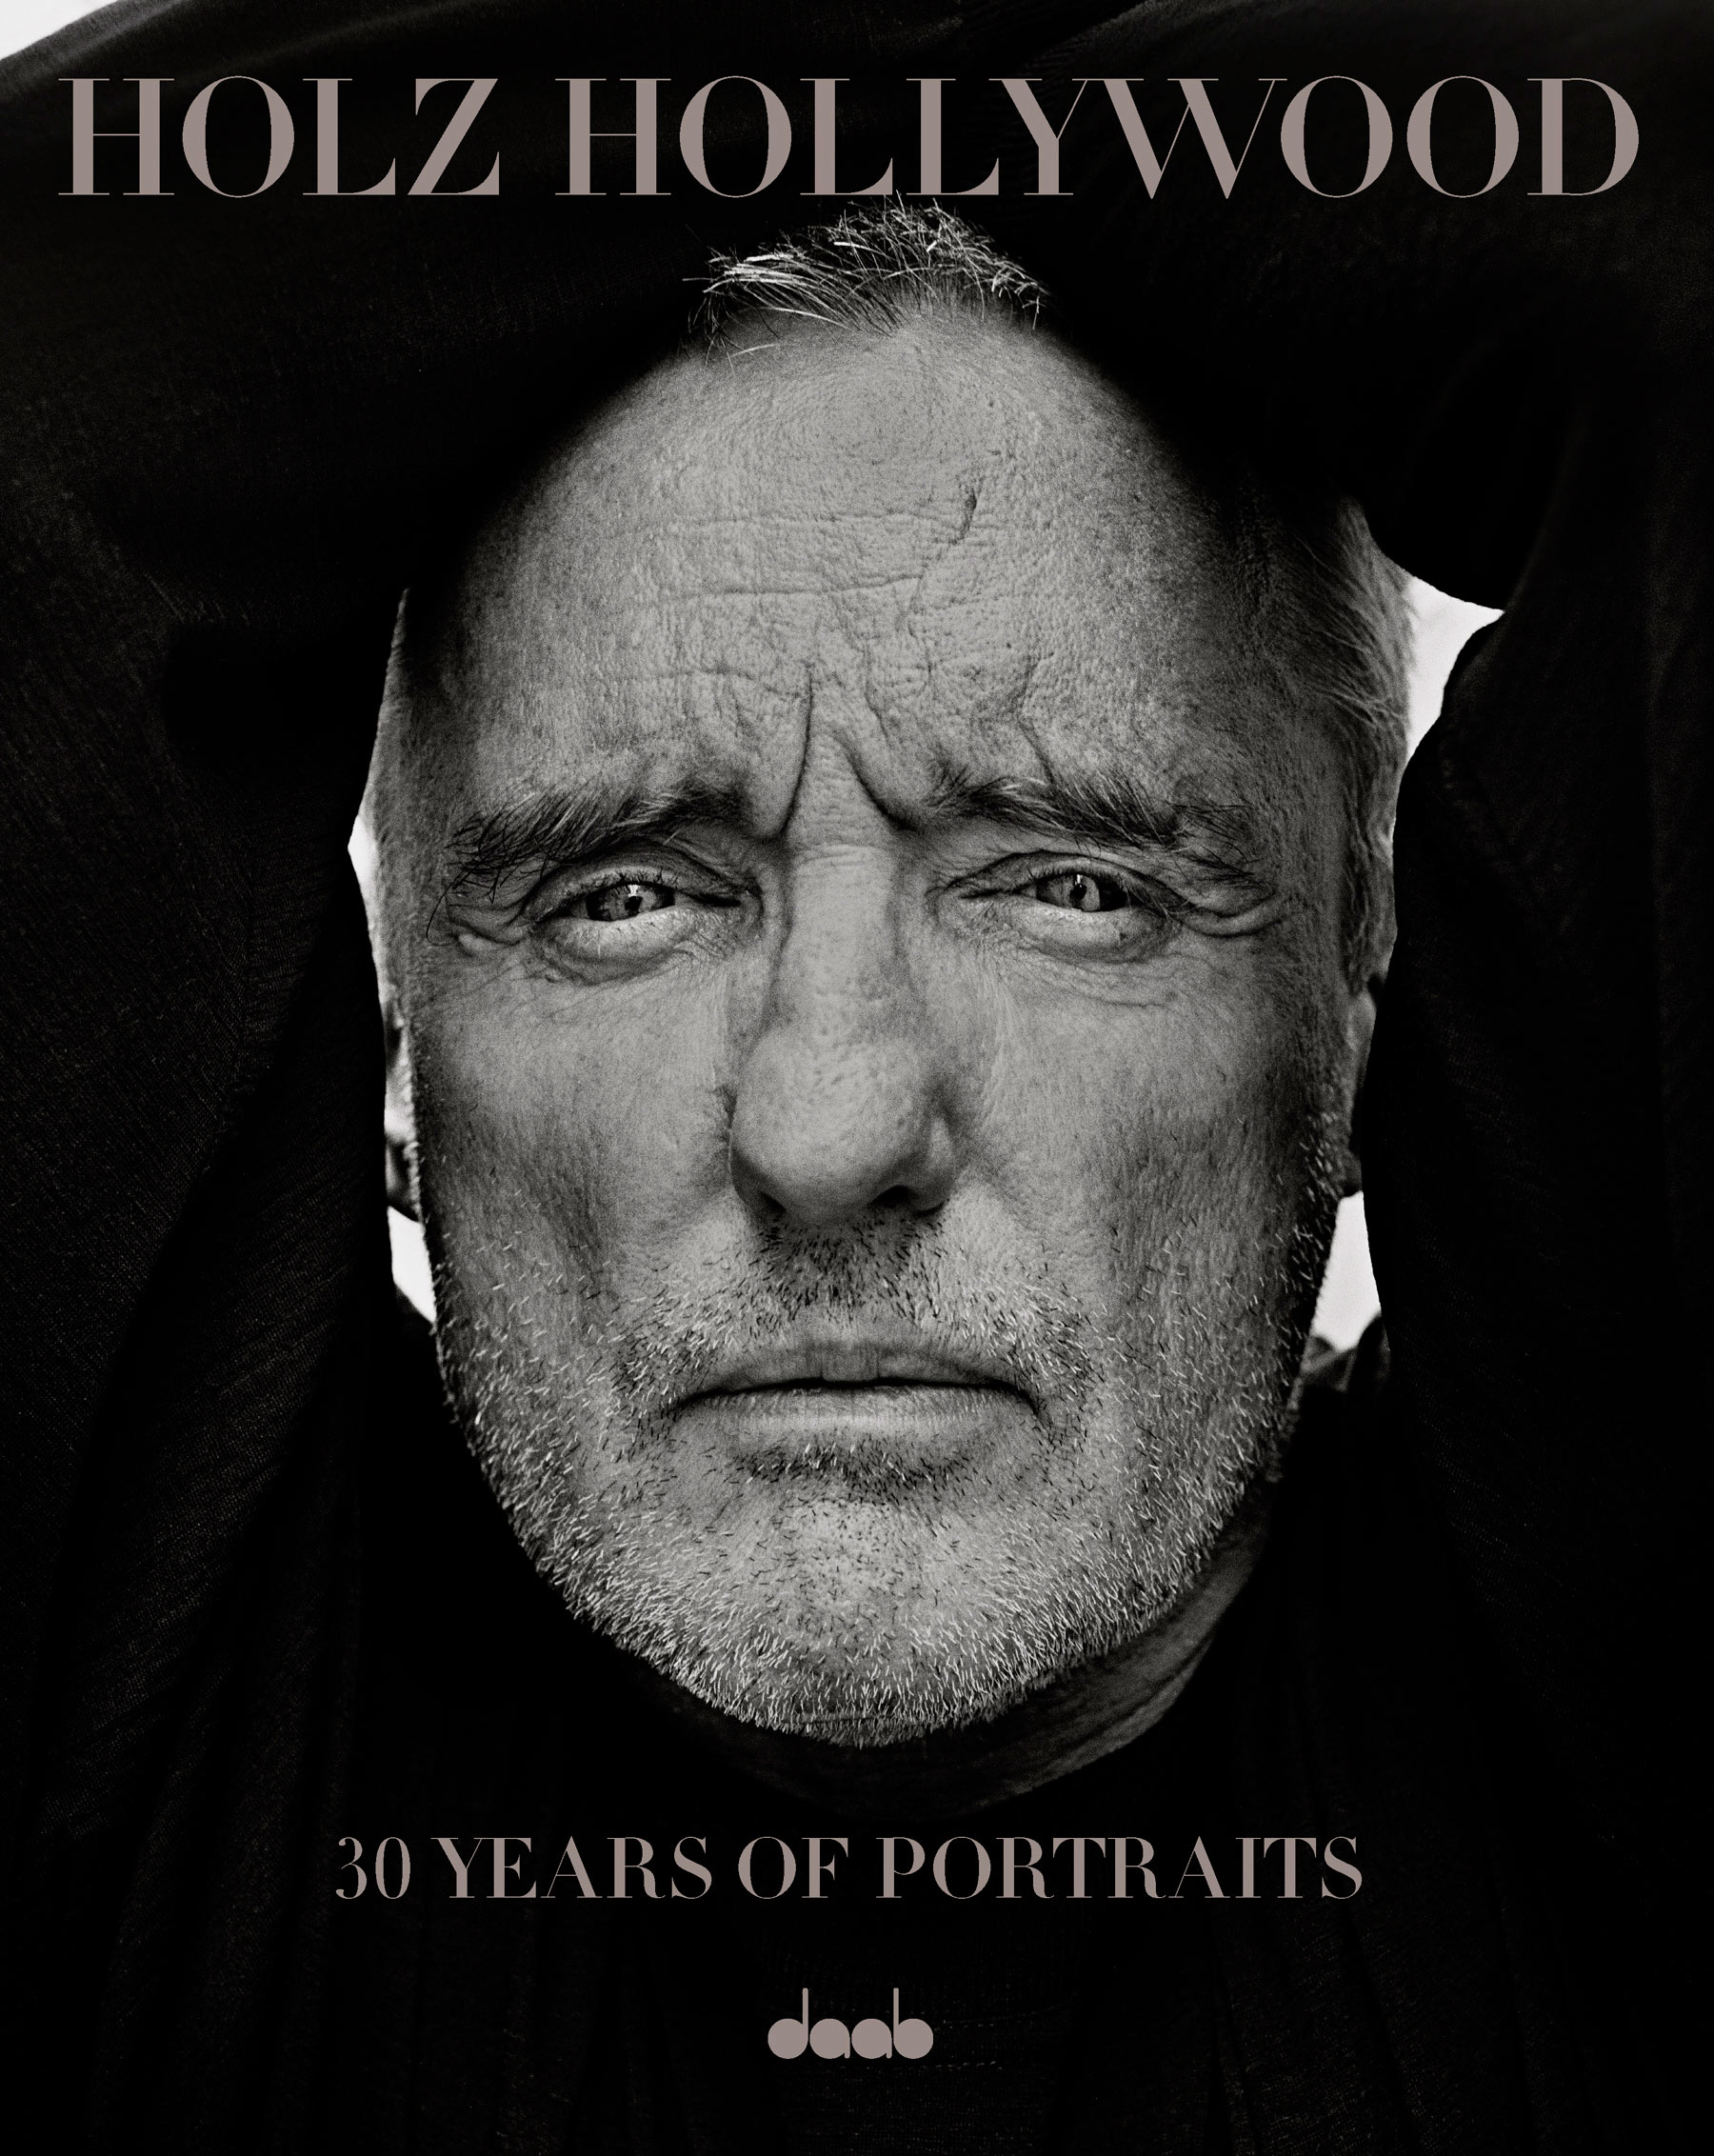 DENNIS_HOPPER_©GEORGE-_HOLZ_COURTSEY_HOPPER_ART_TRUST_WEB